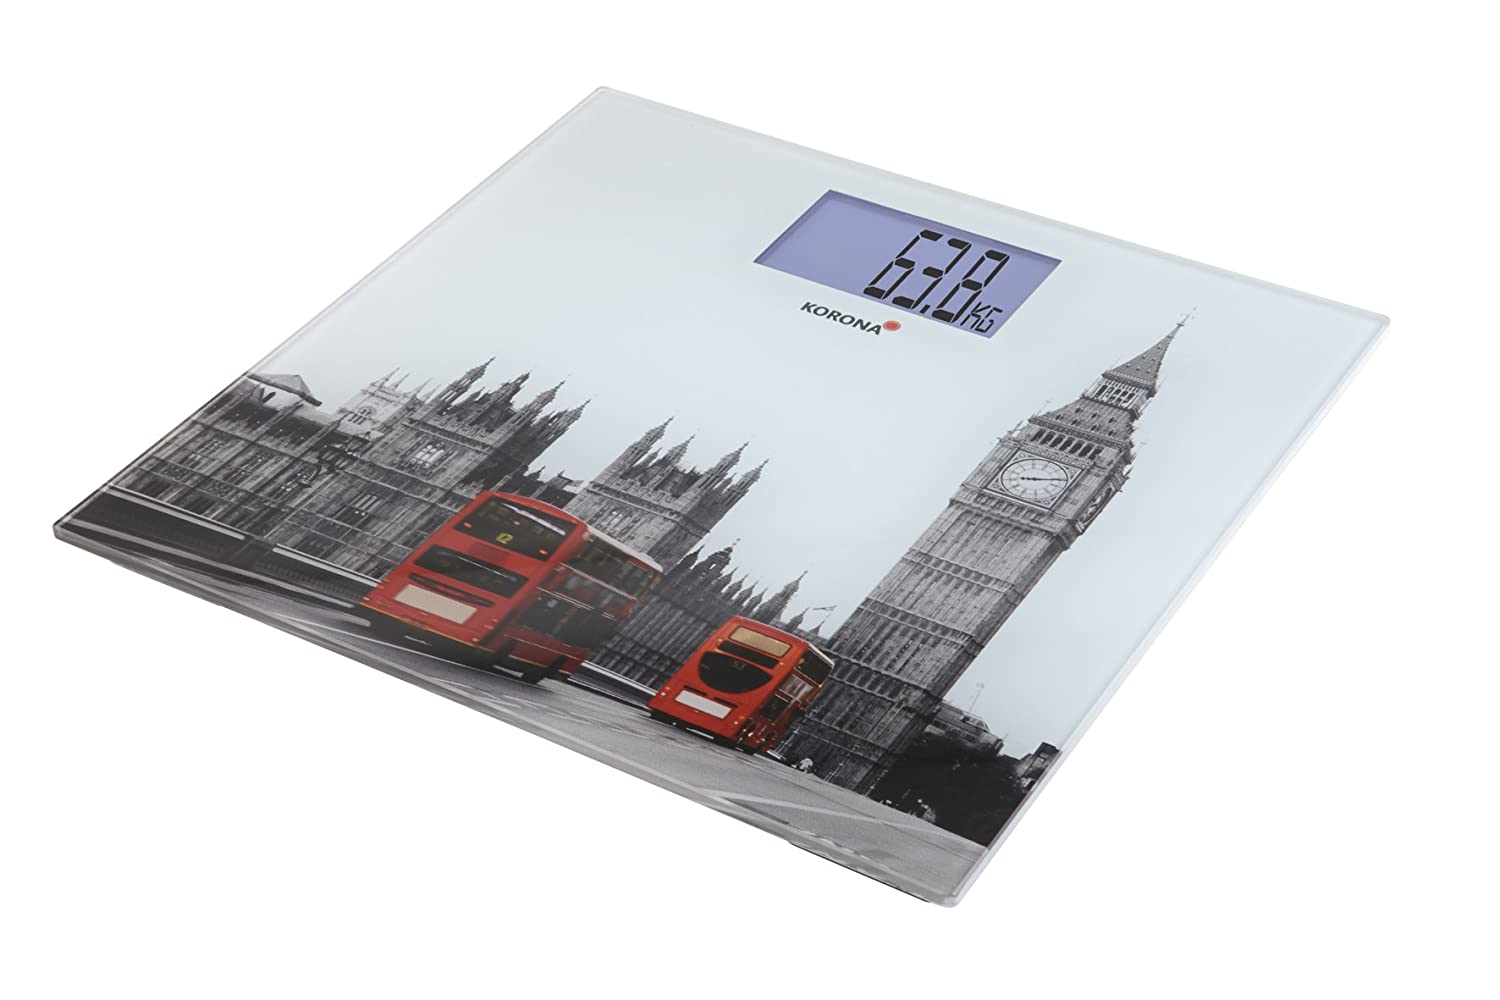 Amazon.com: Korona Londa 73120 Personal Scales with London Bus Motif by KORONA: Health & Personal Care